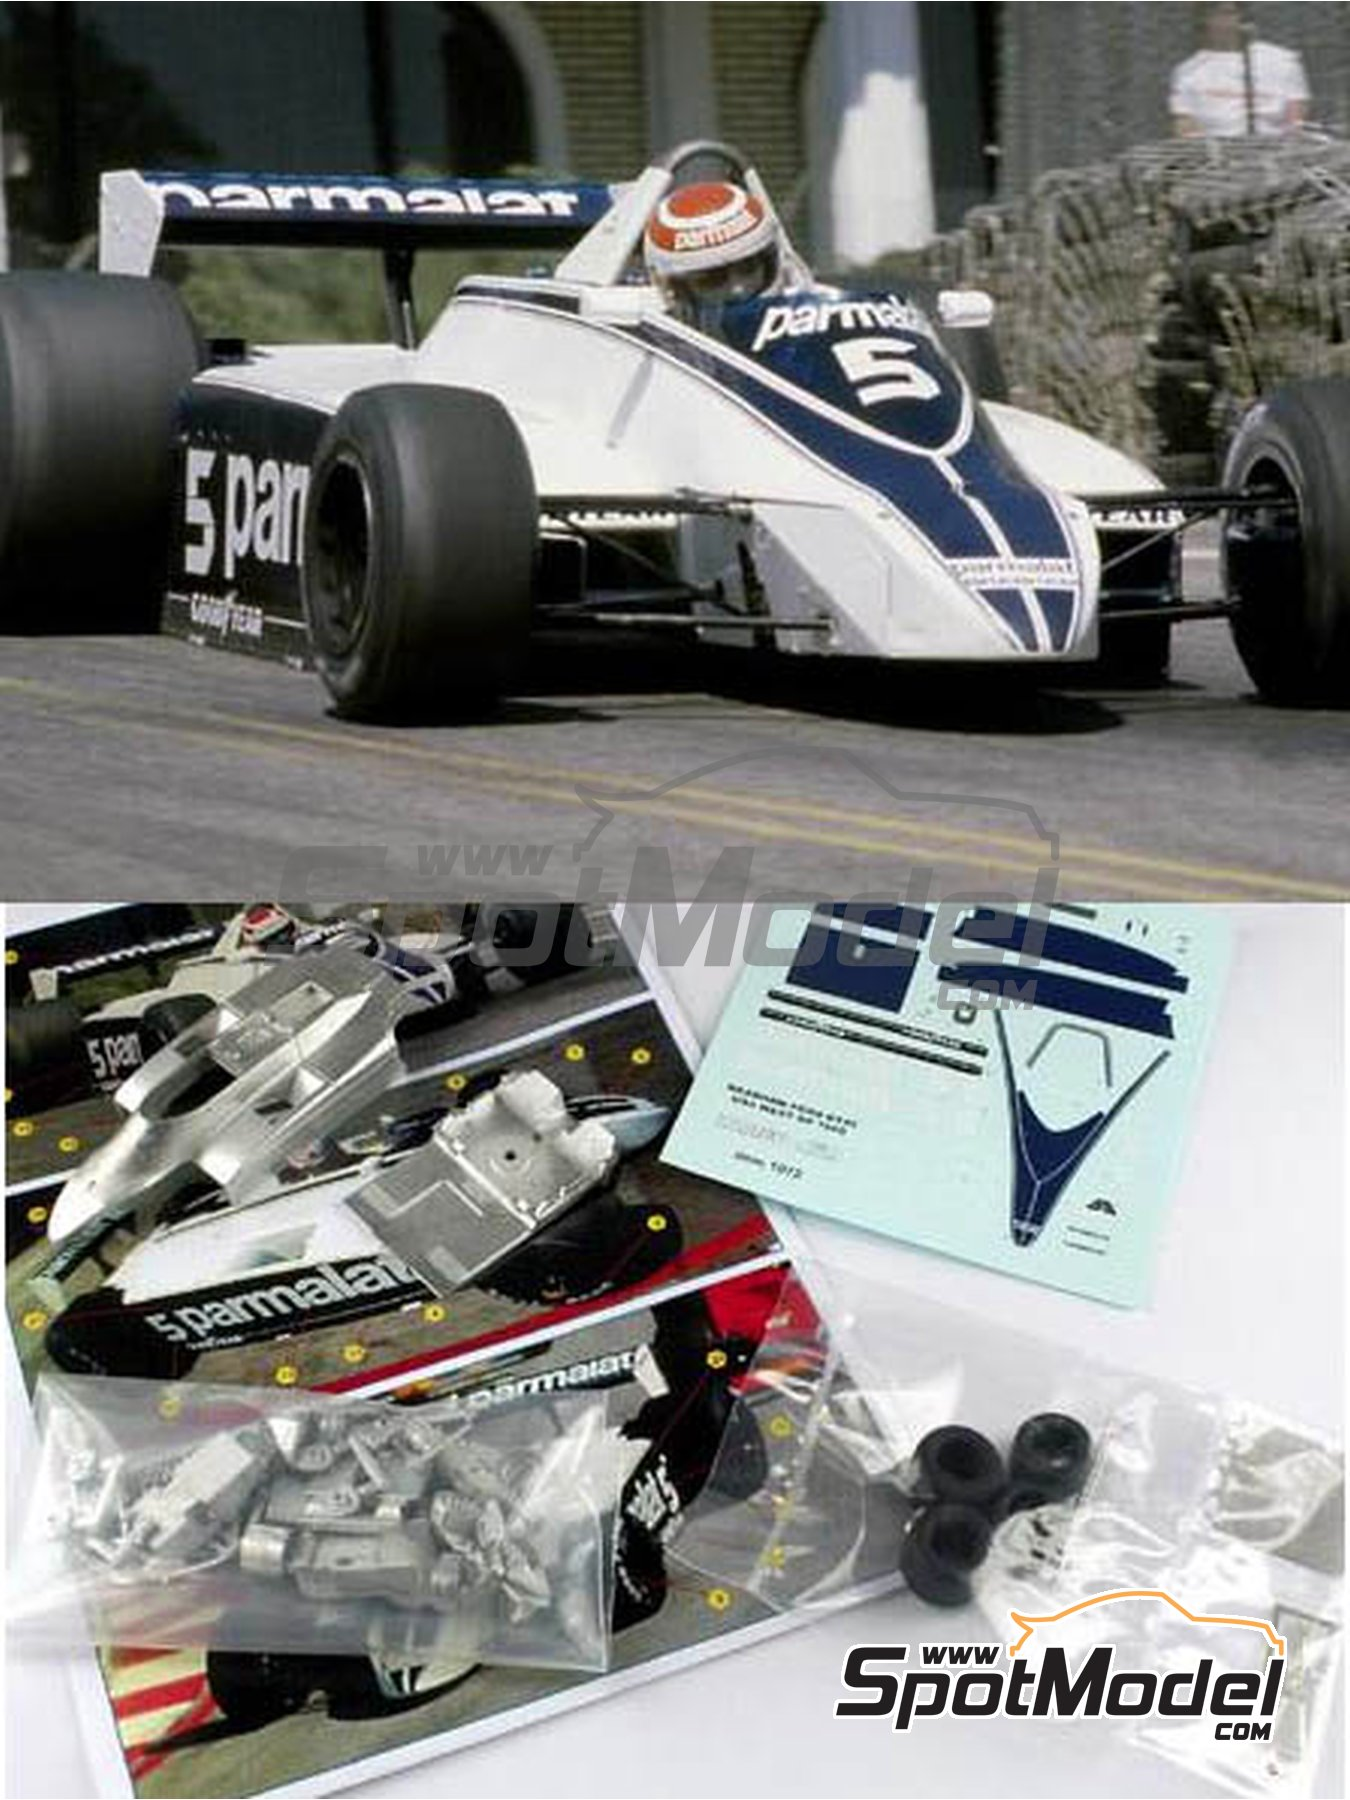 Brabham Ford BT49 Parmalat - USA West Long Beach Grand Prix 1980 | Model car kit in 1/43 scale manufactured by Tameo Kits (ref. CPK003) image